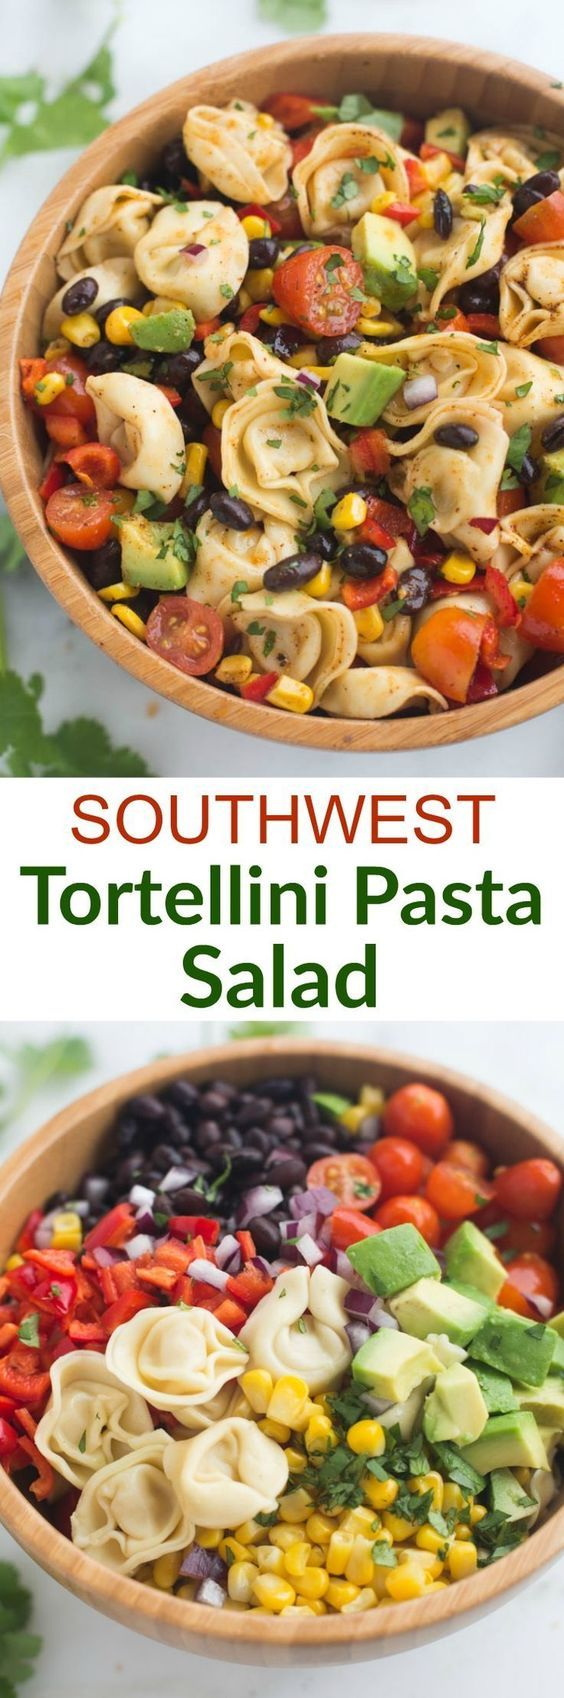 Southwest Tortellini Pasta Salad - Tastes Better From Scratch